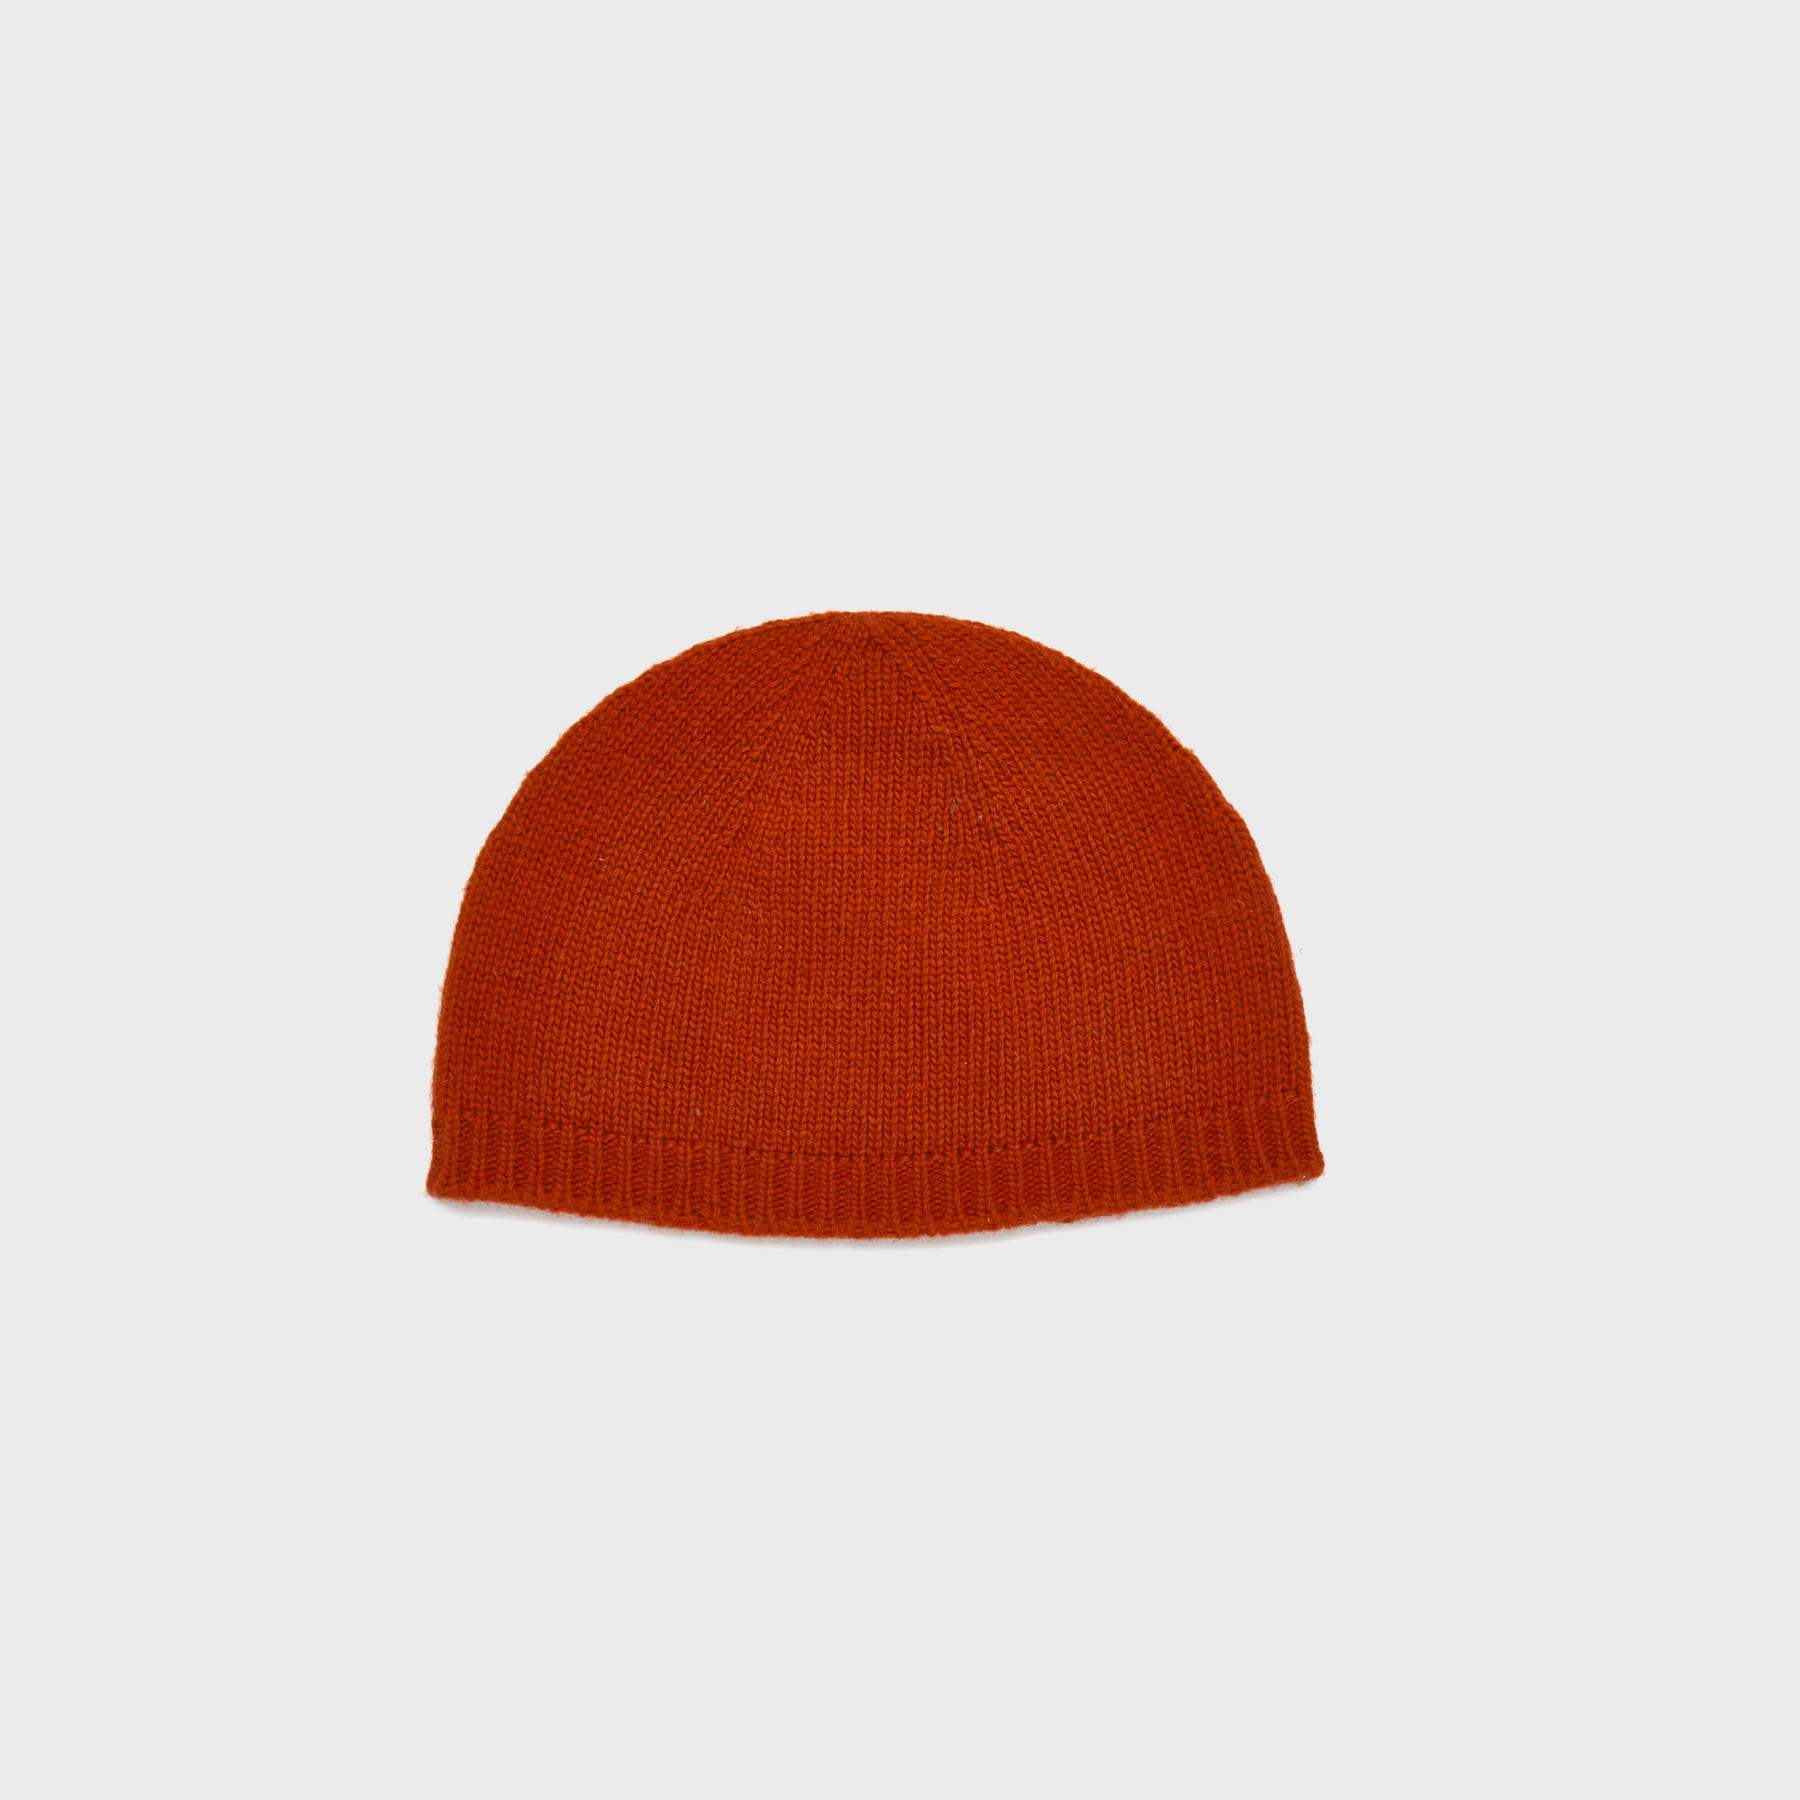 Wool watch cap (red)